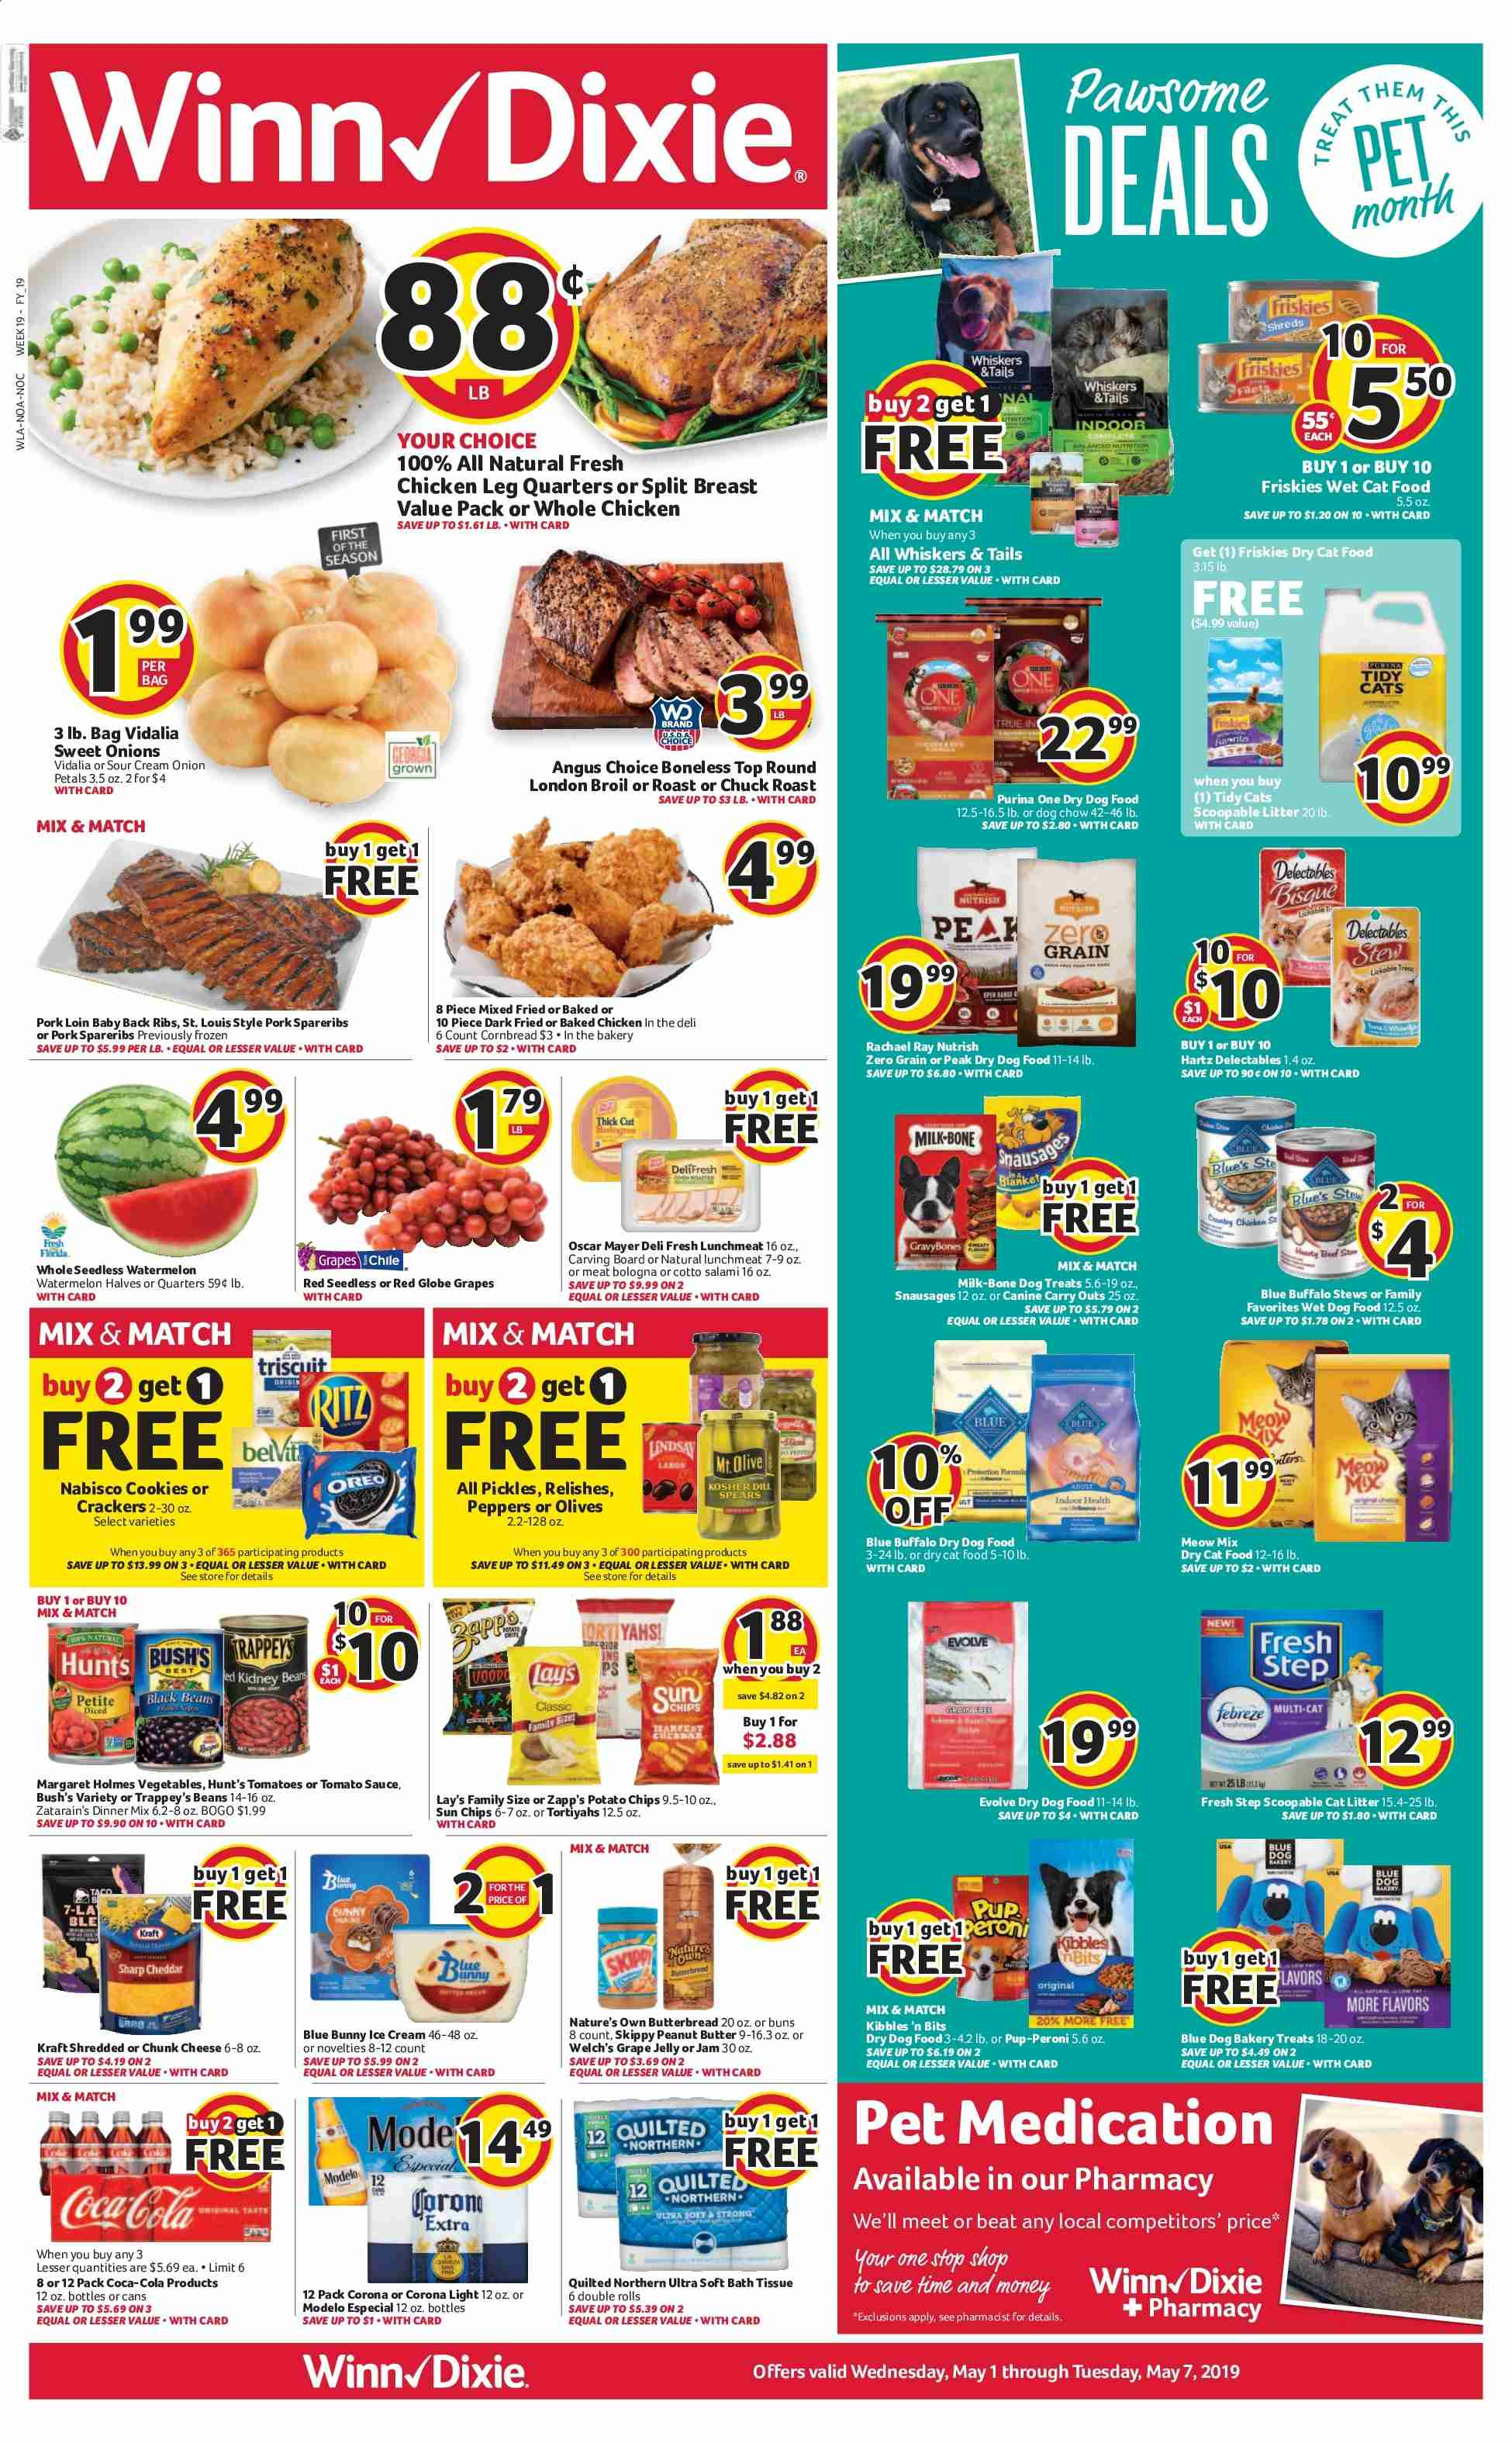 Winn Dixie Flyer - 05.01.2019 - 05.07.2019 - Sales products - Corona, tomatoes, onion, vegetable, grapes, red globe grapes, watermelon, corn bread, whole chicken, chicken, baby back pork ribs, pork loin, pork meat, cheese, jelly, sauce, ice cream, beans, cracker, crackers, tomato sauce, grape jelly, jam, Coca-Cola, bath tissue, Quilted Northern, cat litter, litter, animal food, Blue Buffalo, cat food, dog food, Purina, ribs. Page 1.